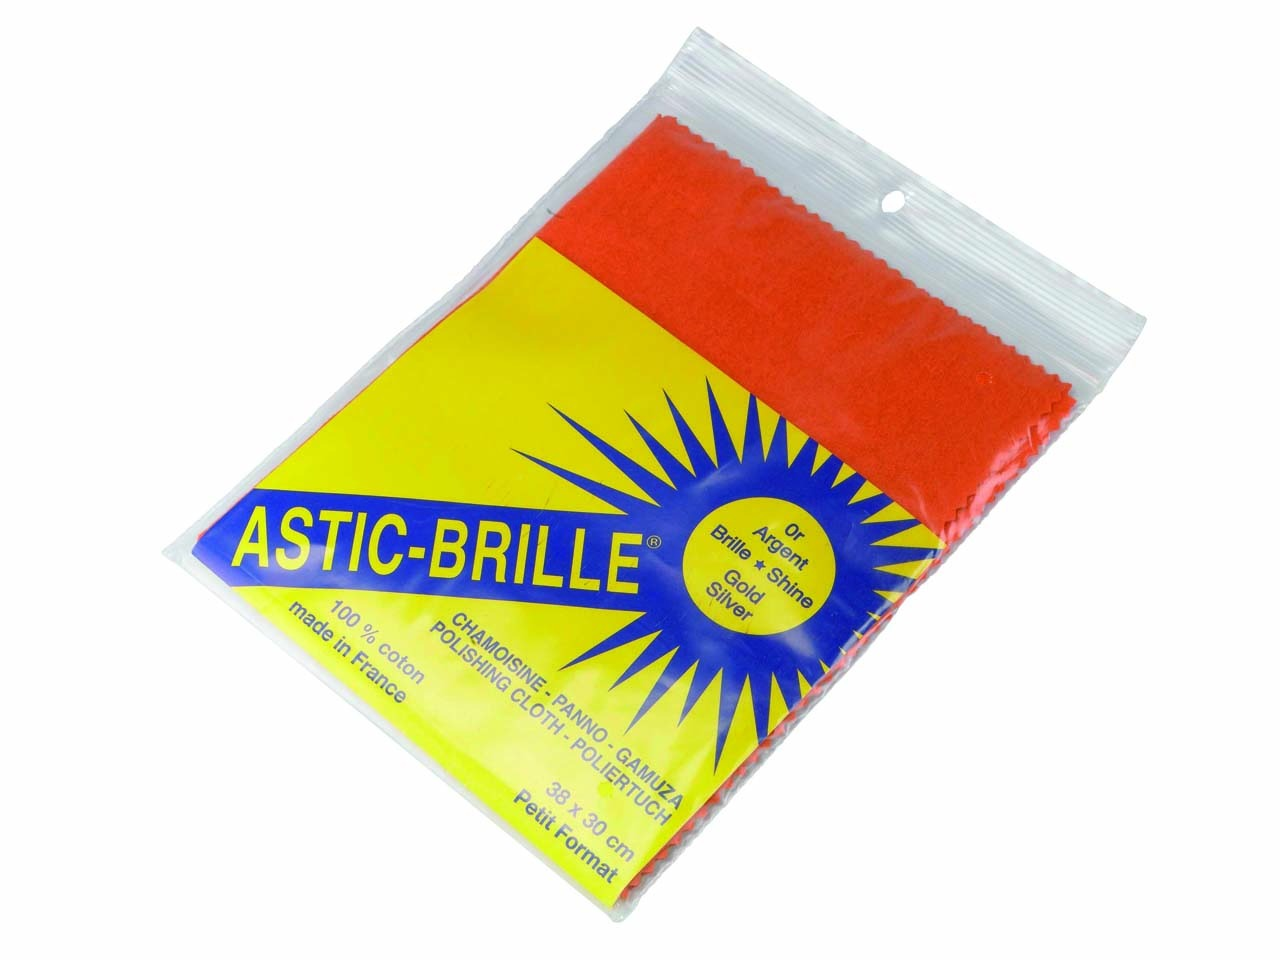 Astic brille petit format, 380 x 300 mm